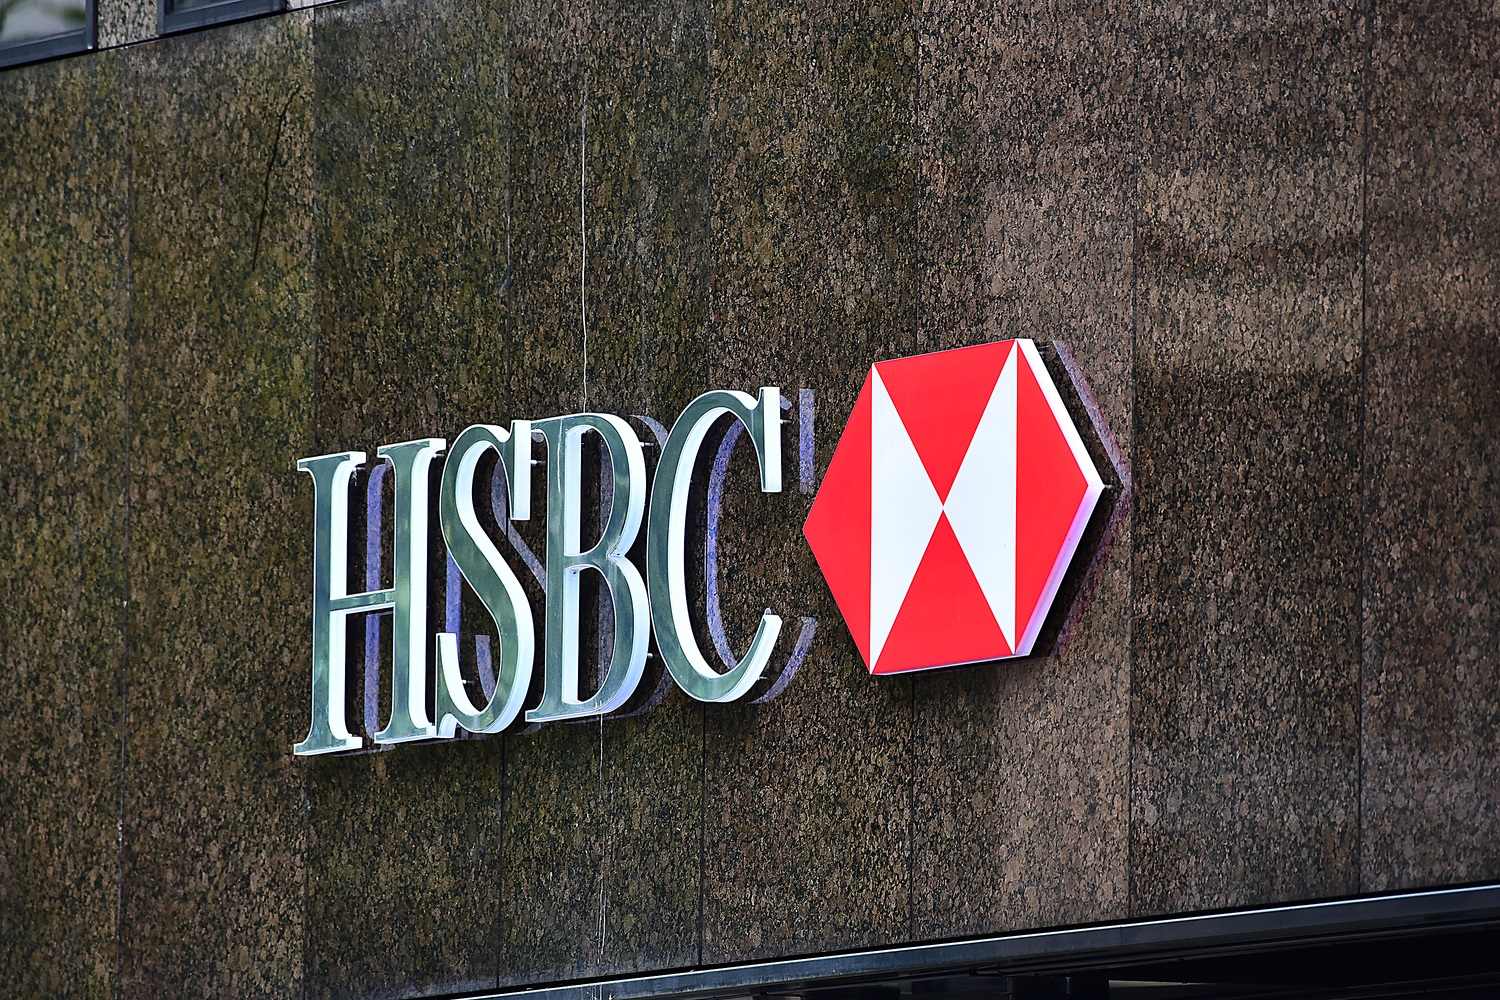 HSBC Says It's Settled $250 Billion in Trades With Distributed Ledger Tech - CoinDesk